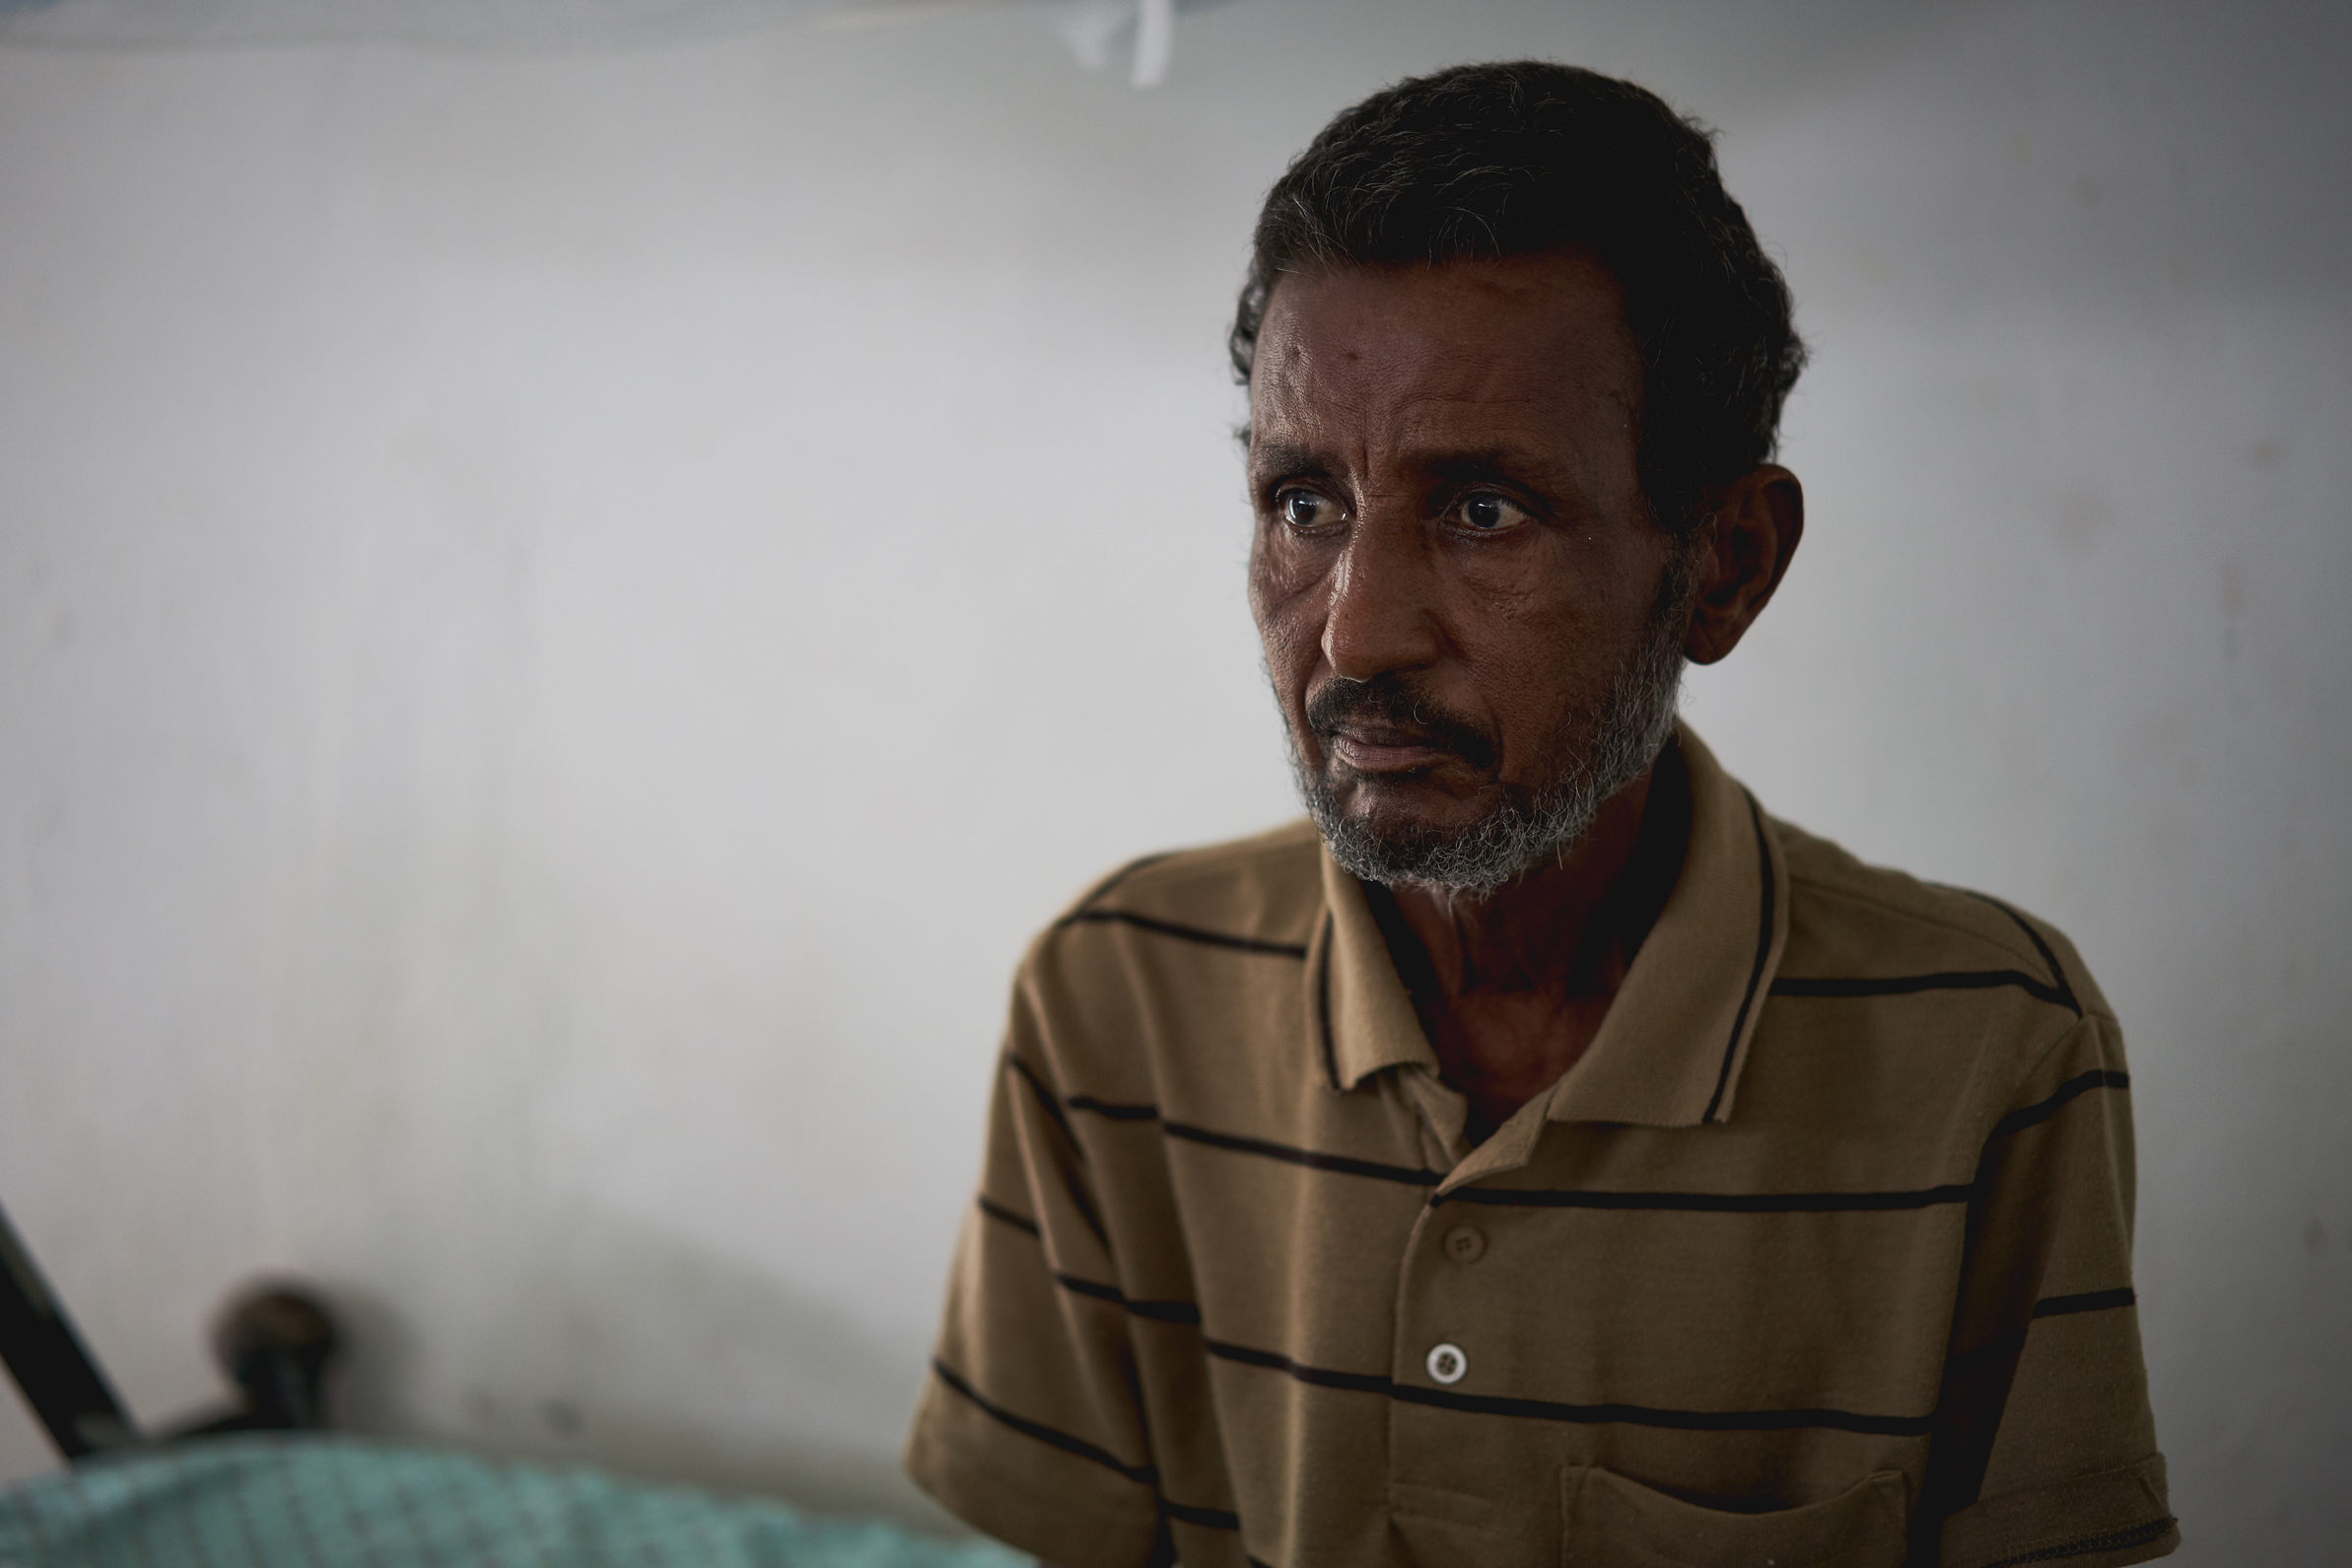 Wubet, 48, is a primary kala azar patient with HIV co-infection. He is being treated by MSF in Abdurafi, Ethiopia and is part of the kala azar research programme led by MSF and Antwerp Institute of Tropical Medicine (ITM).